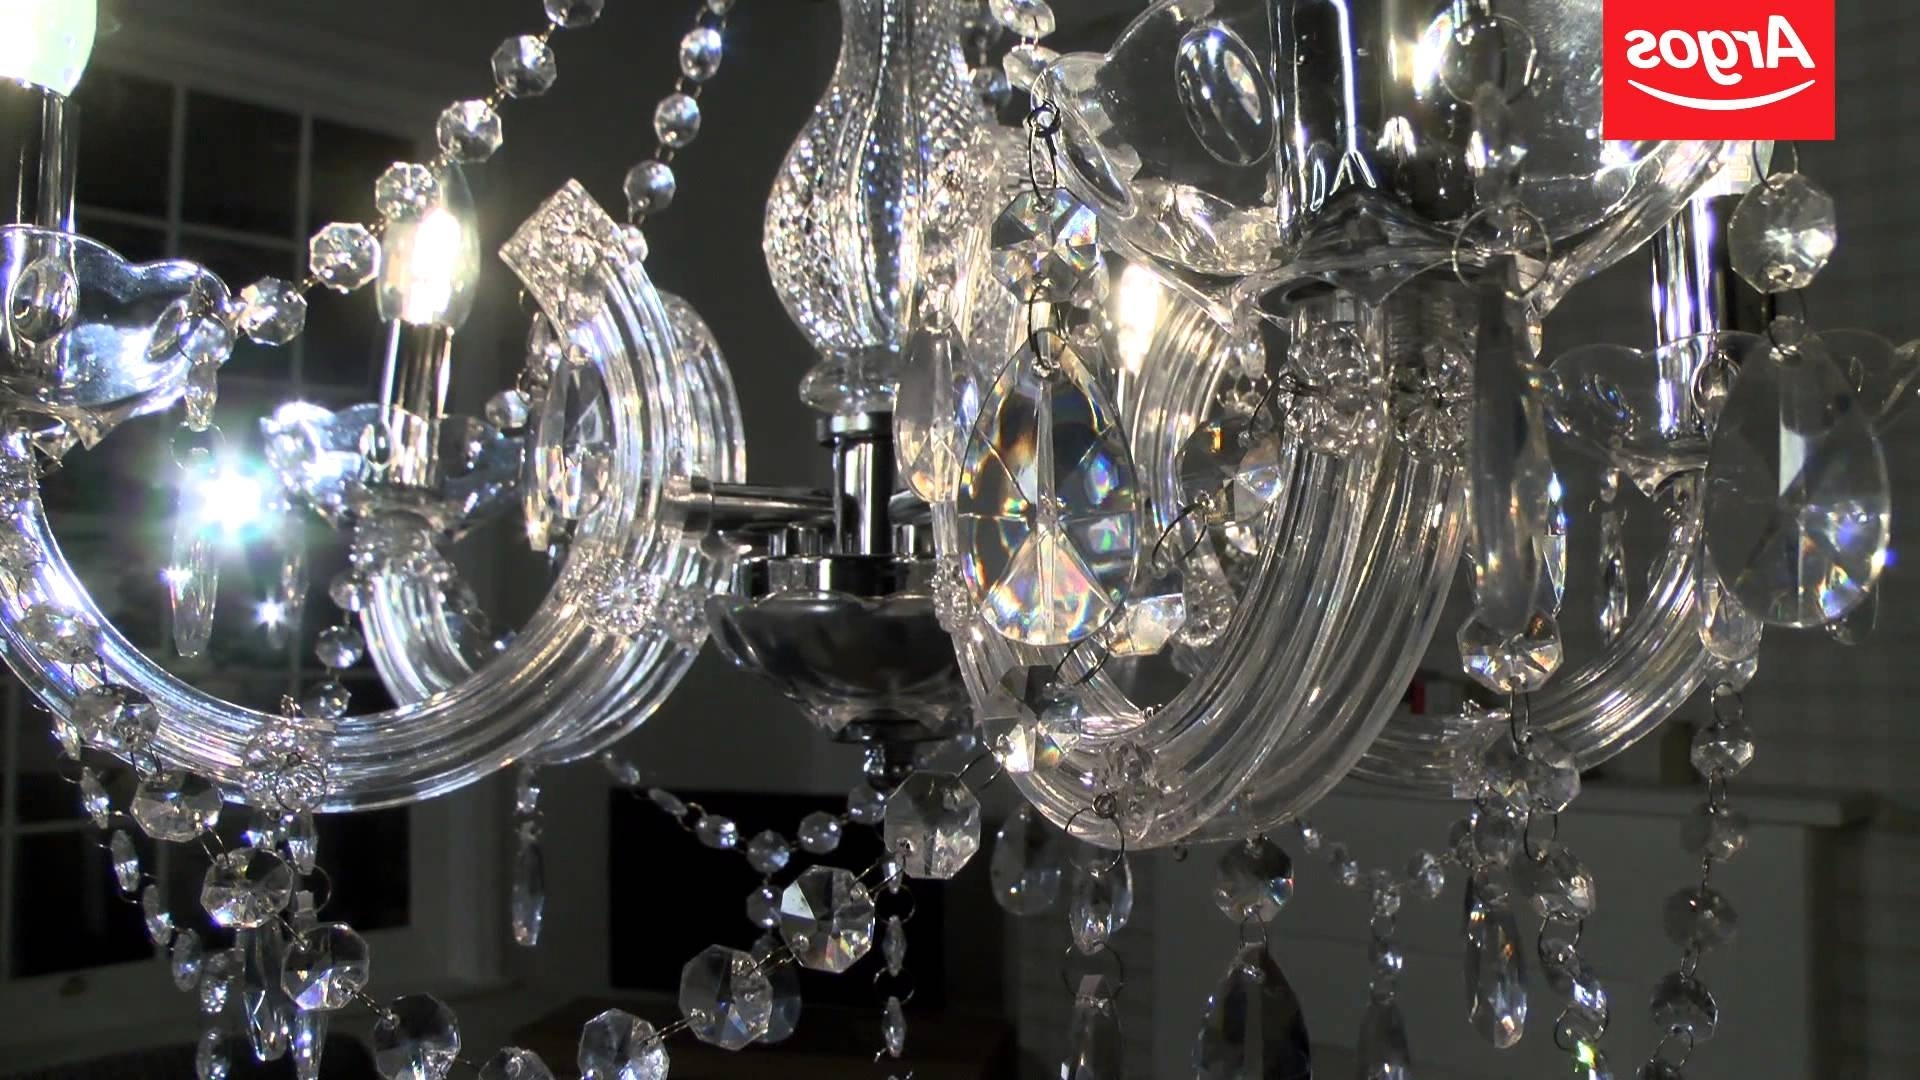 Buy Inspire Chandelier 5 Light Ceiling Fitting – Youtube Within Best And Newest Light Fitting Chandeliers (View 20 of 20)